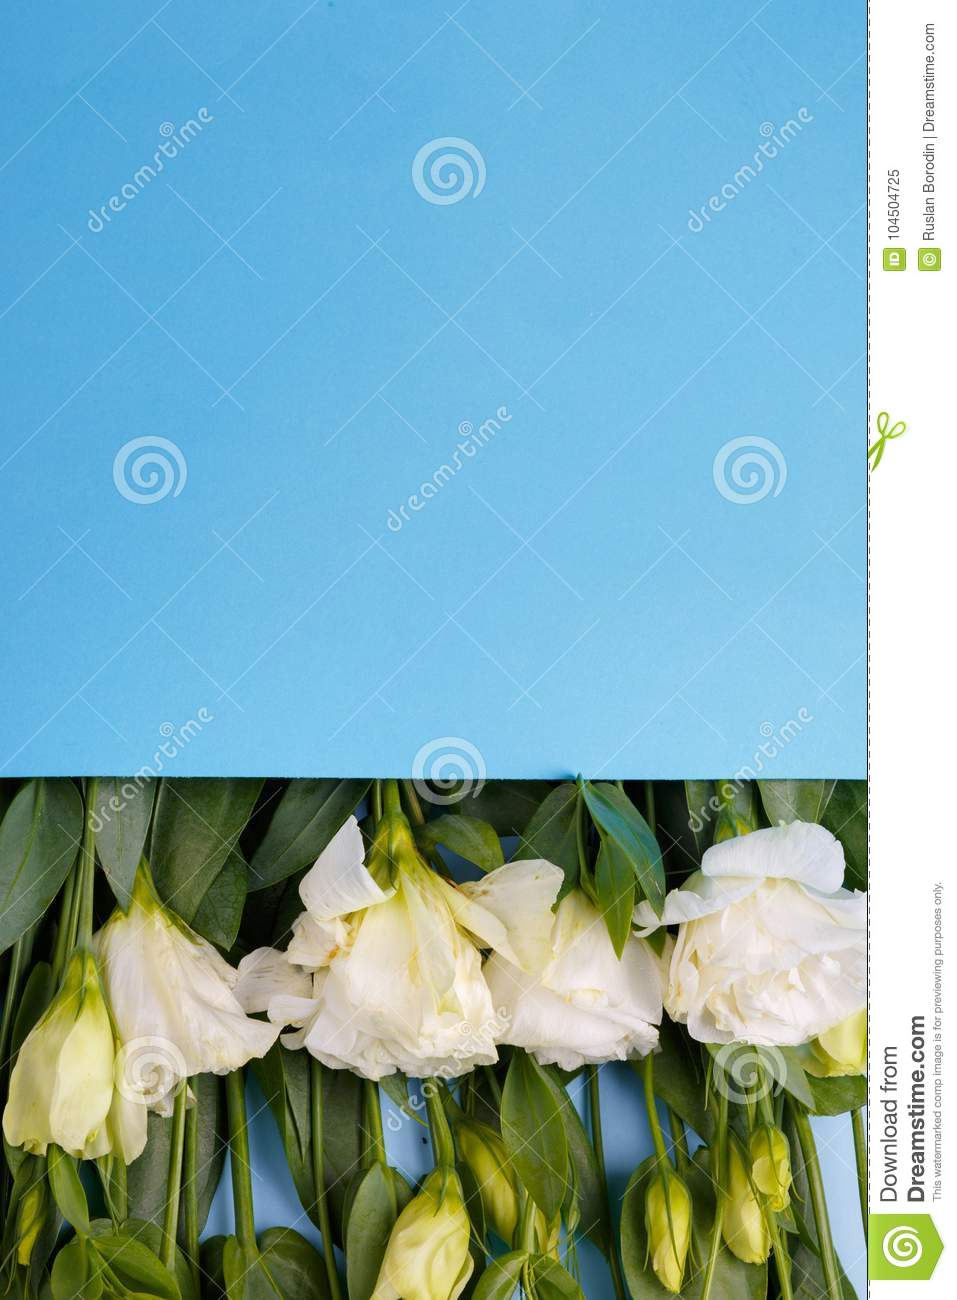 Japanese Roses Lie In A Row In A Blue Envelope Upside Down With A